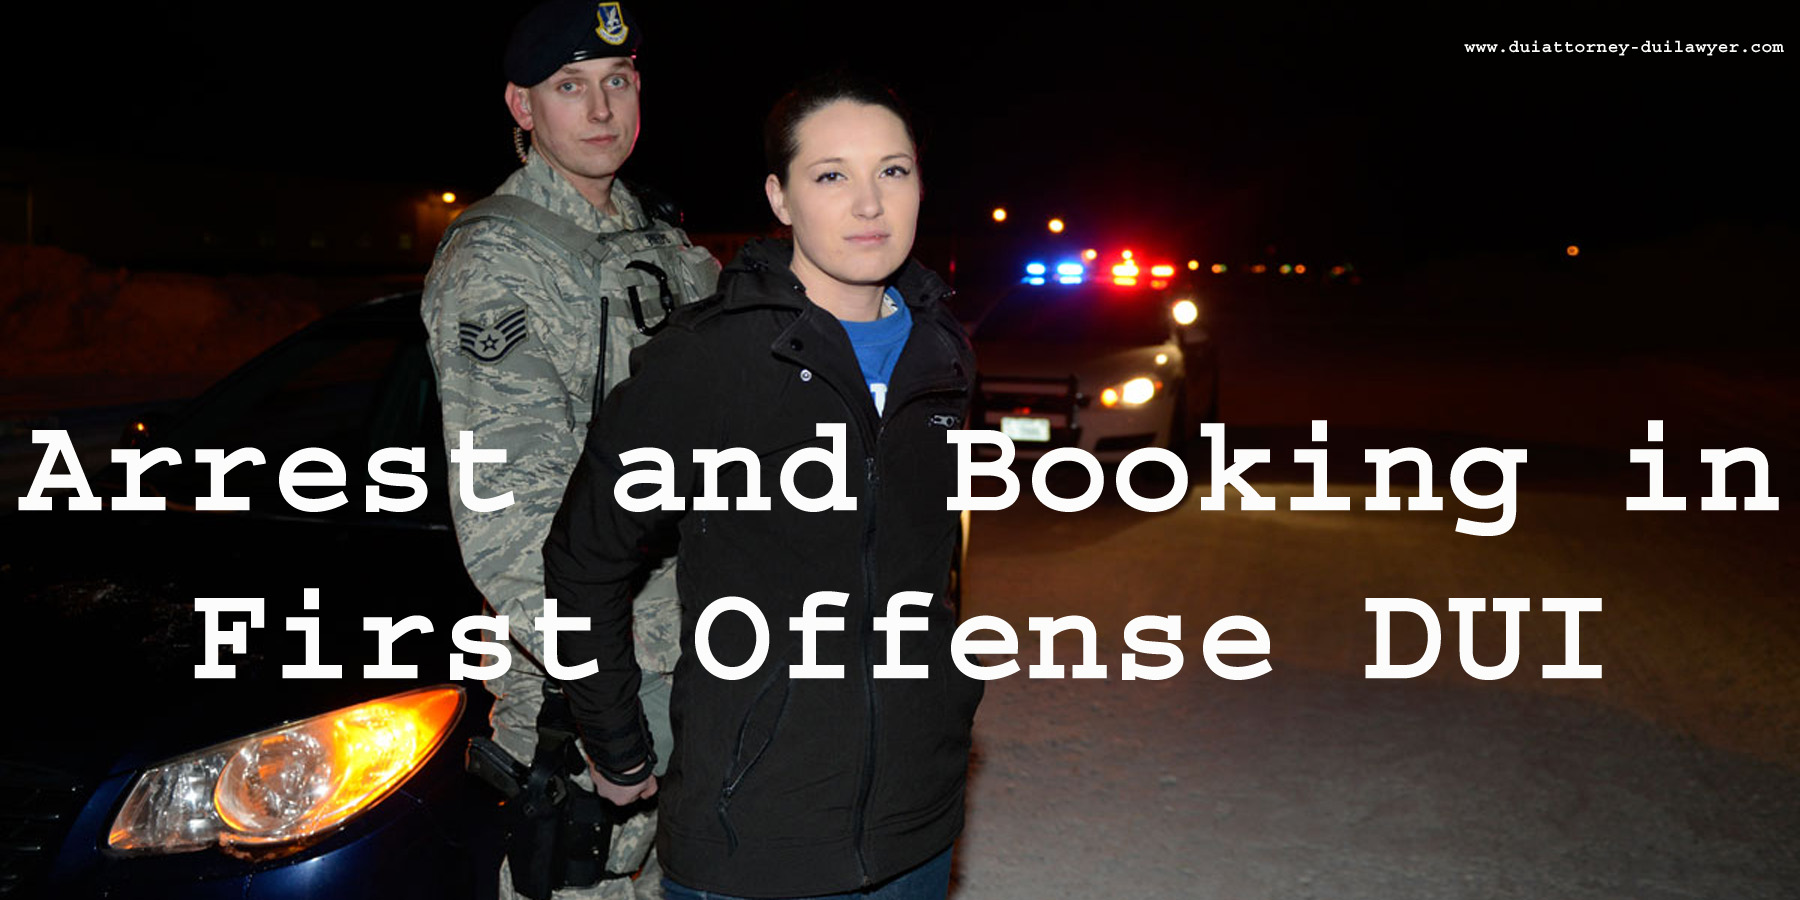 9.1_First Offense DUI